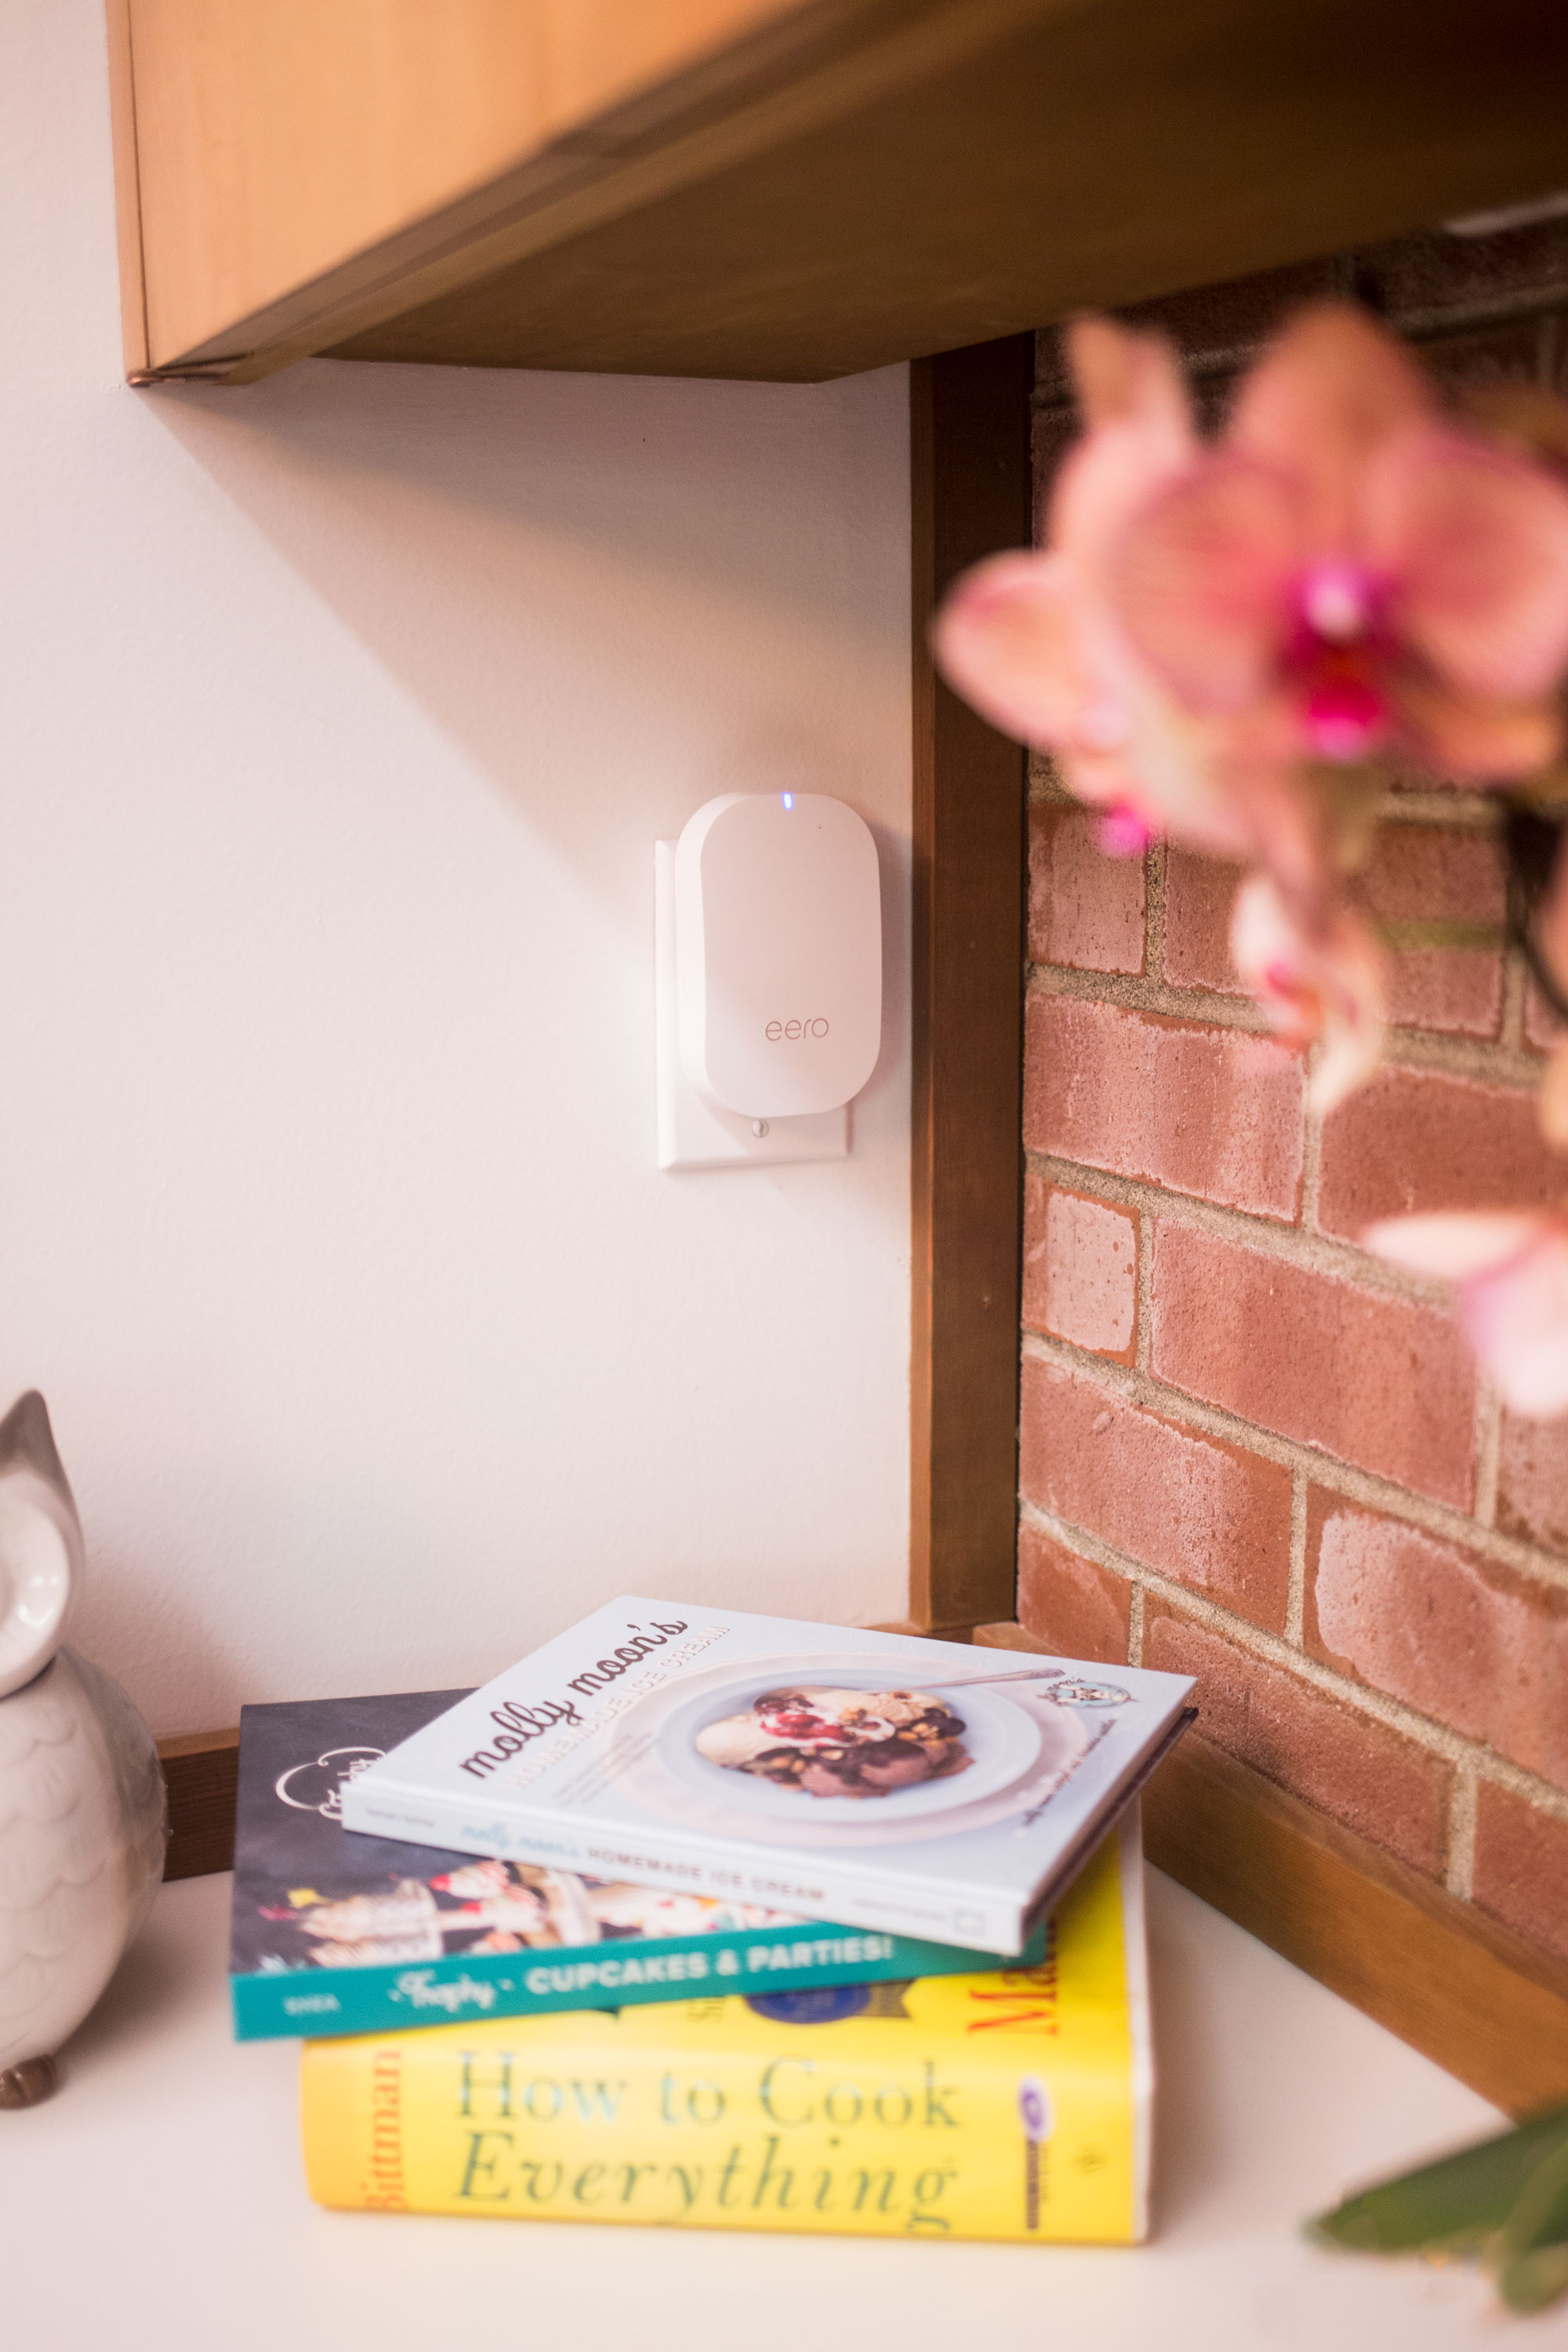 How to Improve WiFi Speed // eero Review // Hello Rigby Seattle Lifestyle Blog